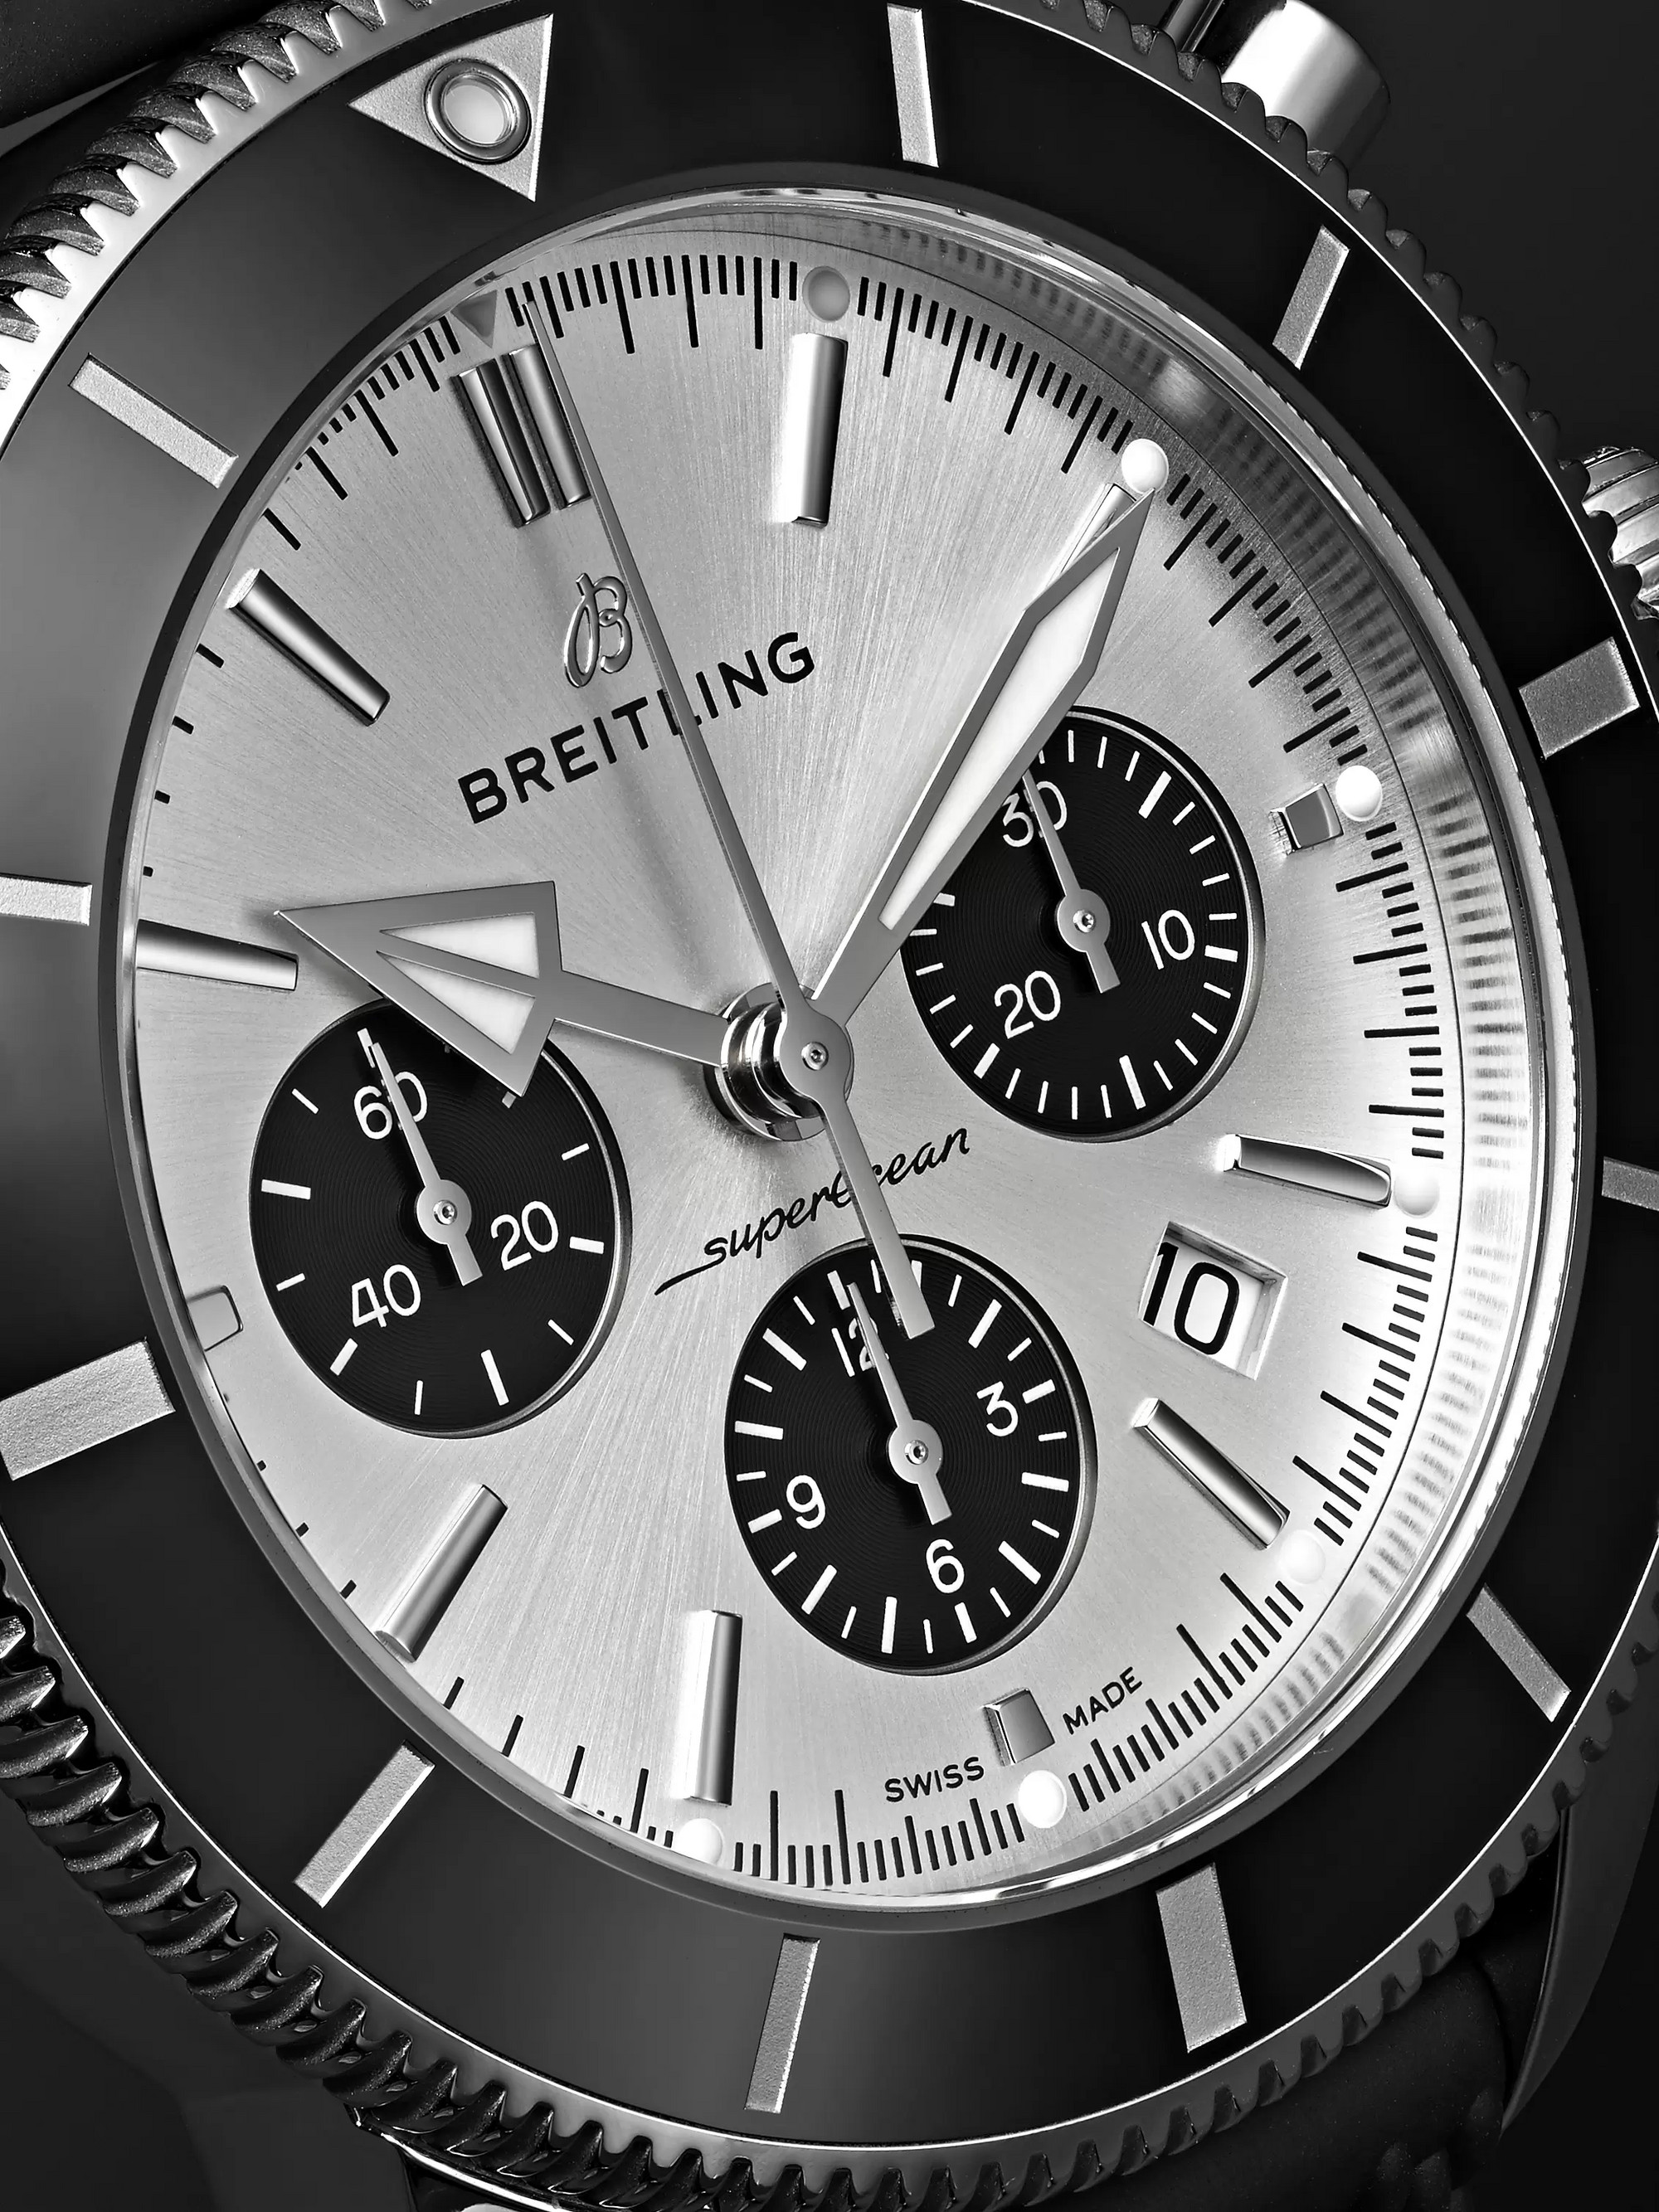 Breitling Superocean Héritage II B01 Chronometer 44mm Stainless Steel and Rubber Watch